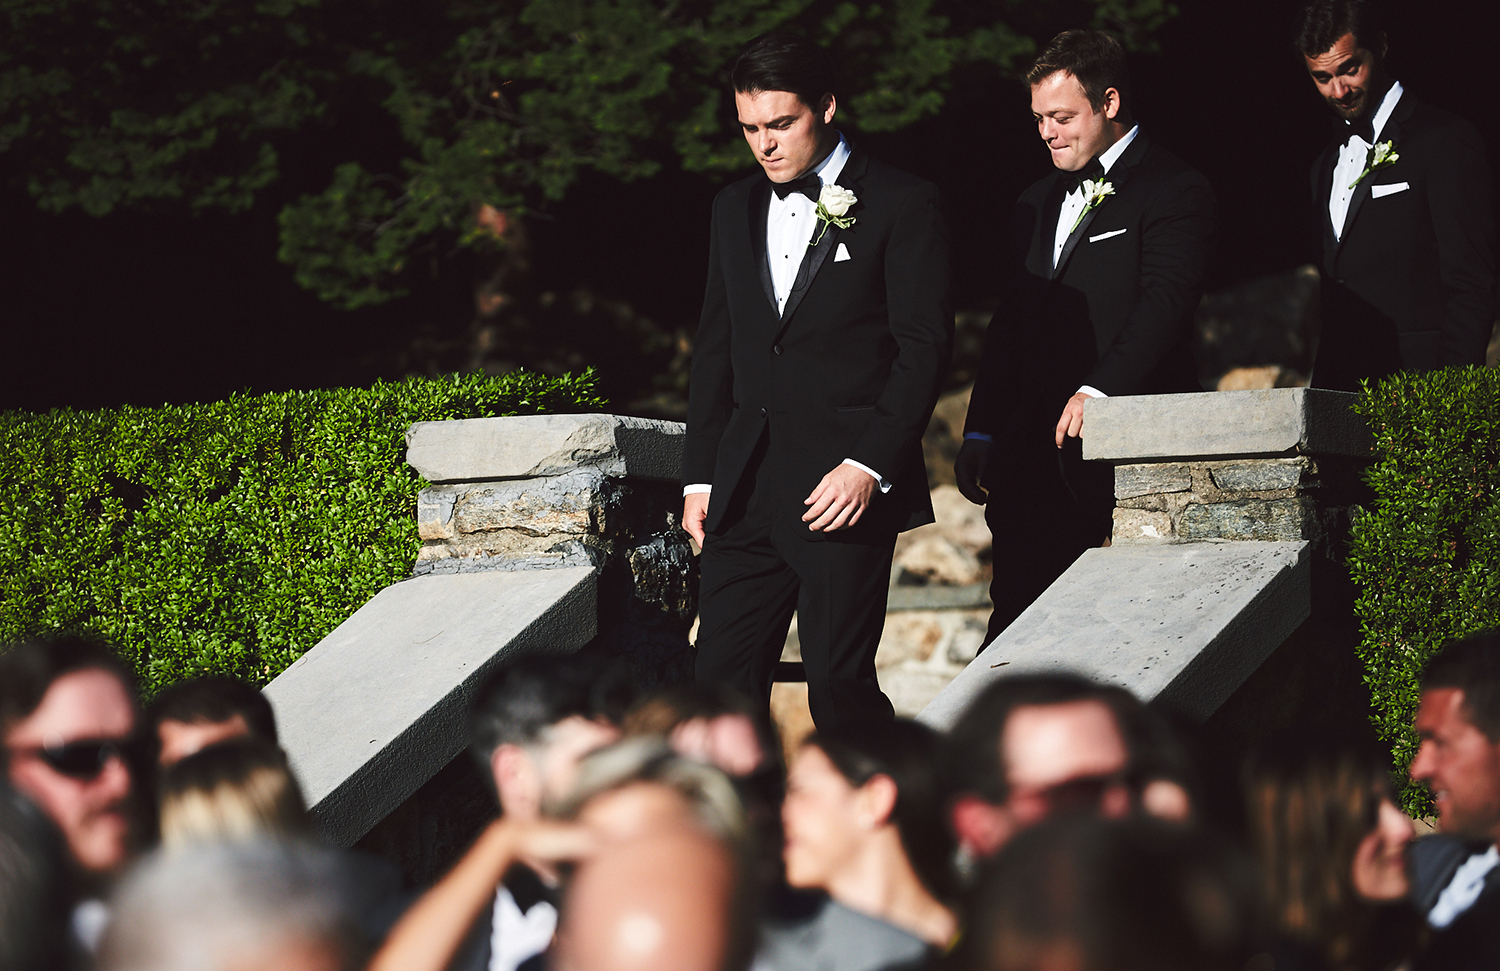 170804_TappanHillMansionWeddingPhotography_NYWeddingPhotographerBy_BriJohnsonWeddings_0094.jpg